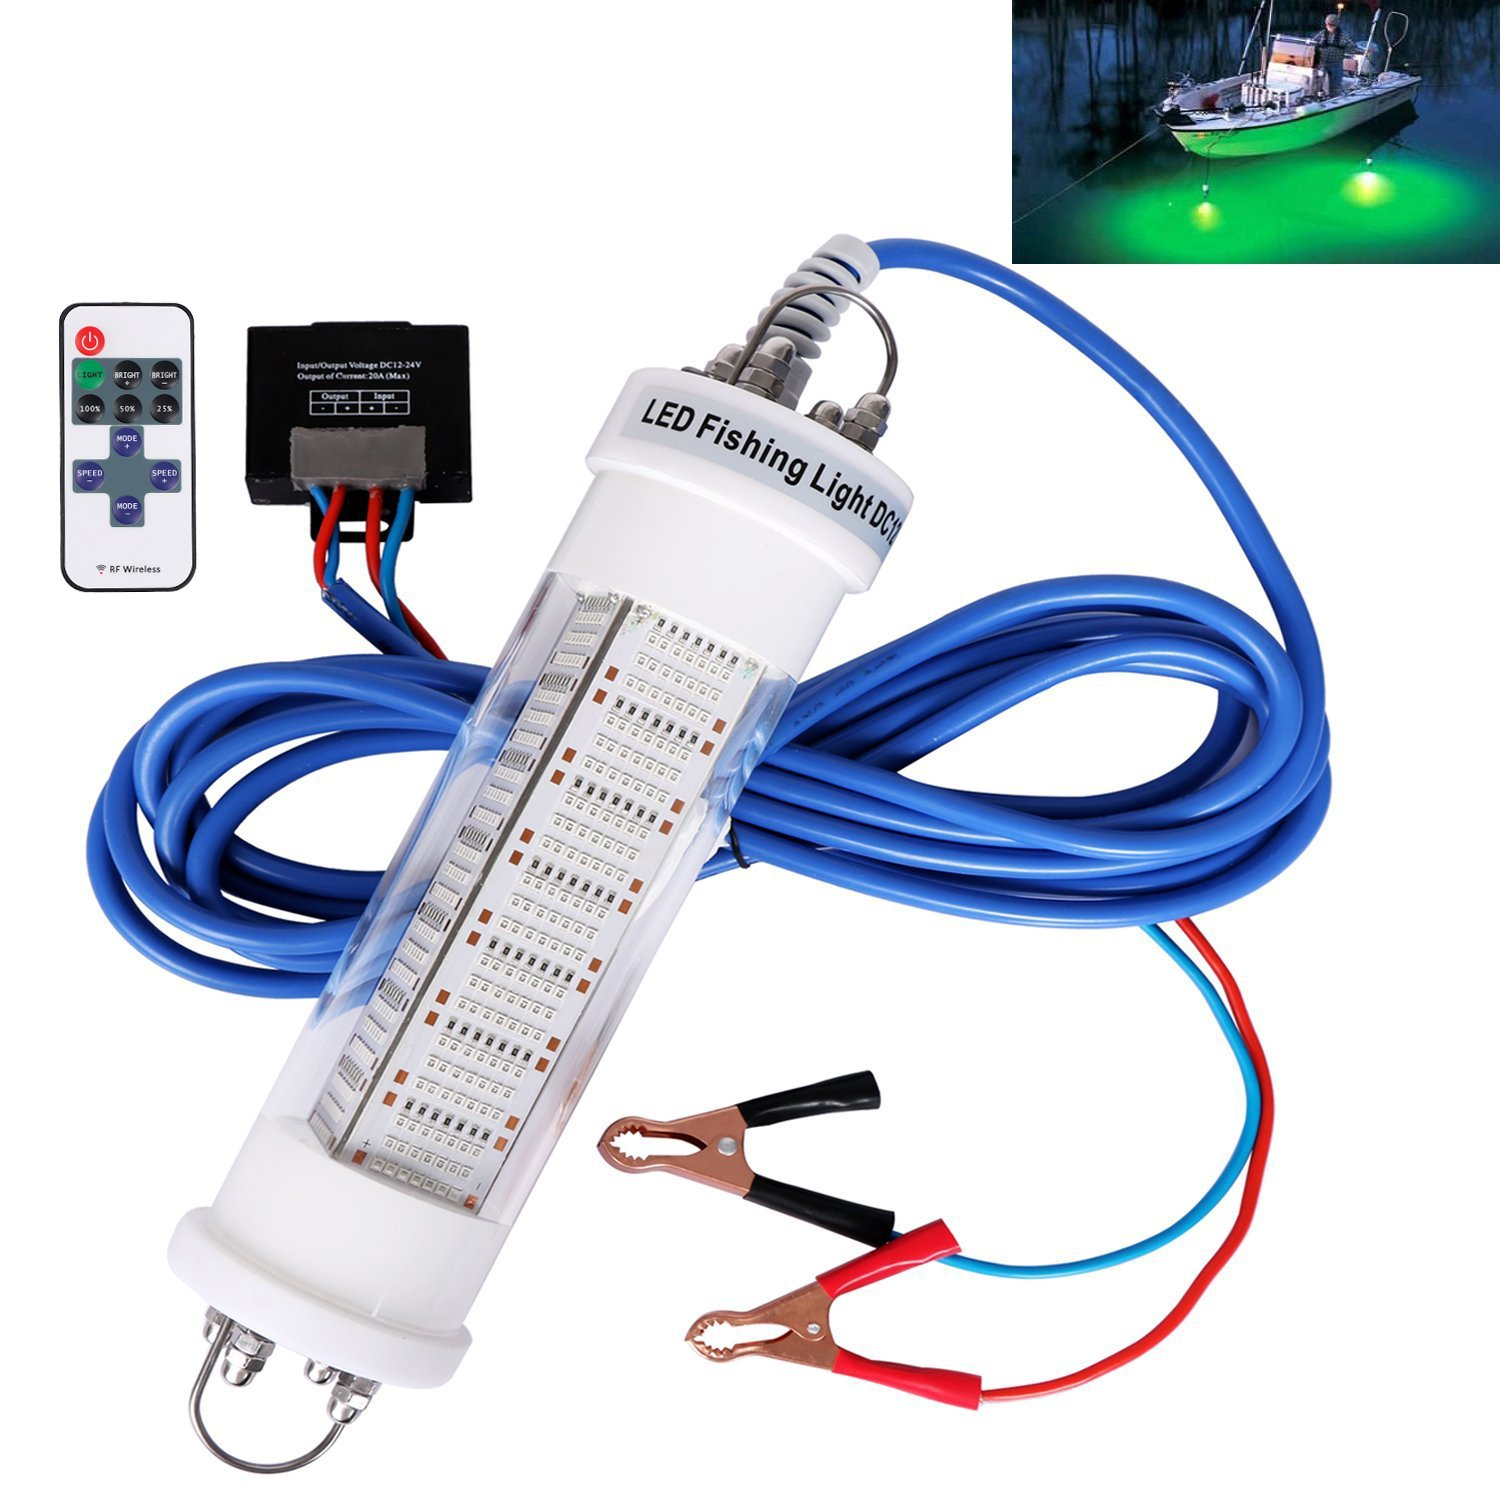 Goture 12V IP68 High-Power LED Fully Submersible Night Fishing Light Deep Drop Underwater Lure Bait Fish Finder Lamp with 5.52 Cable for Krill, Phytoplankton, Squid - White